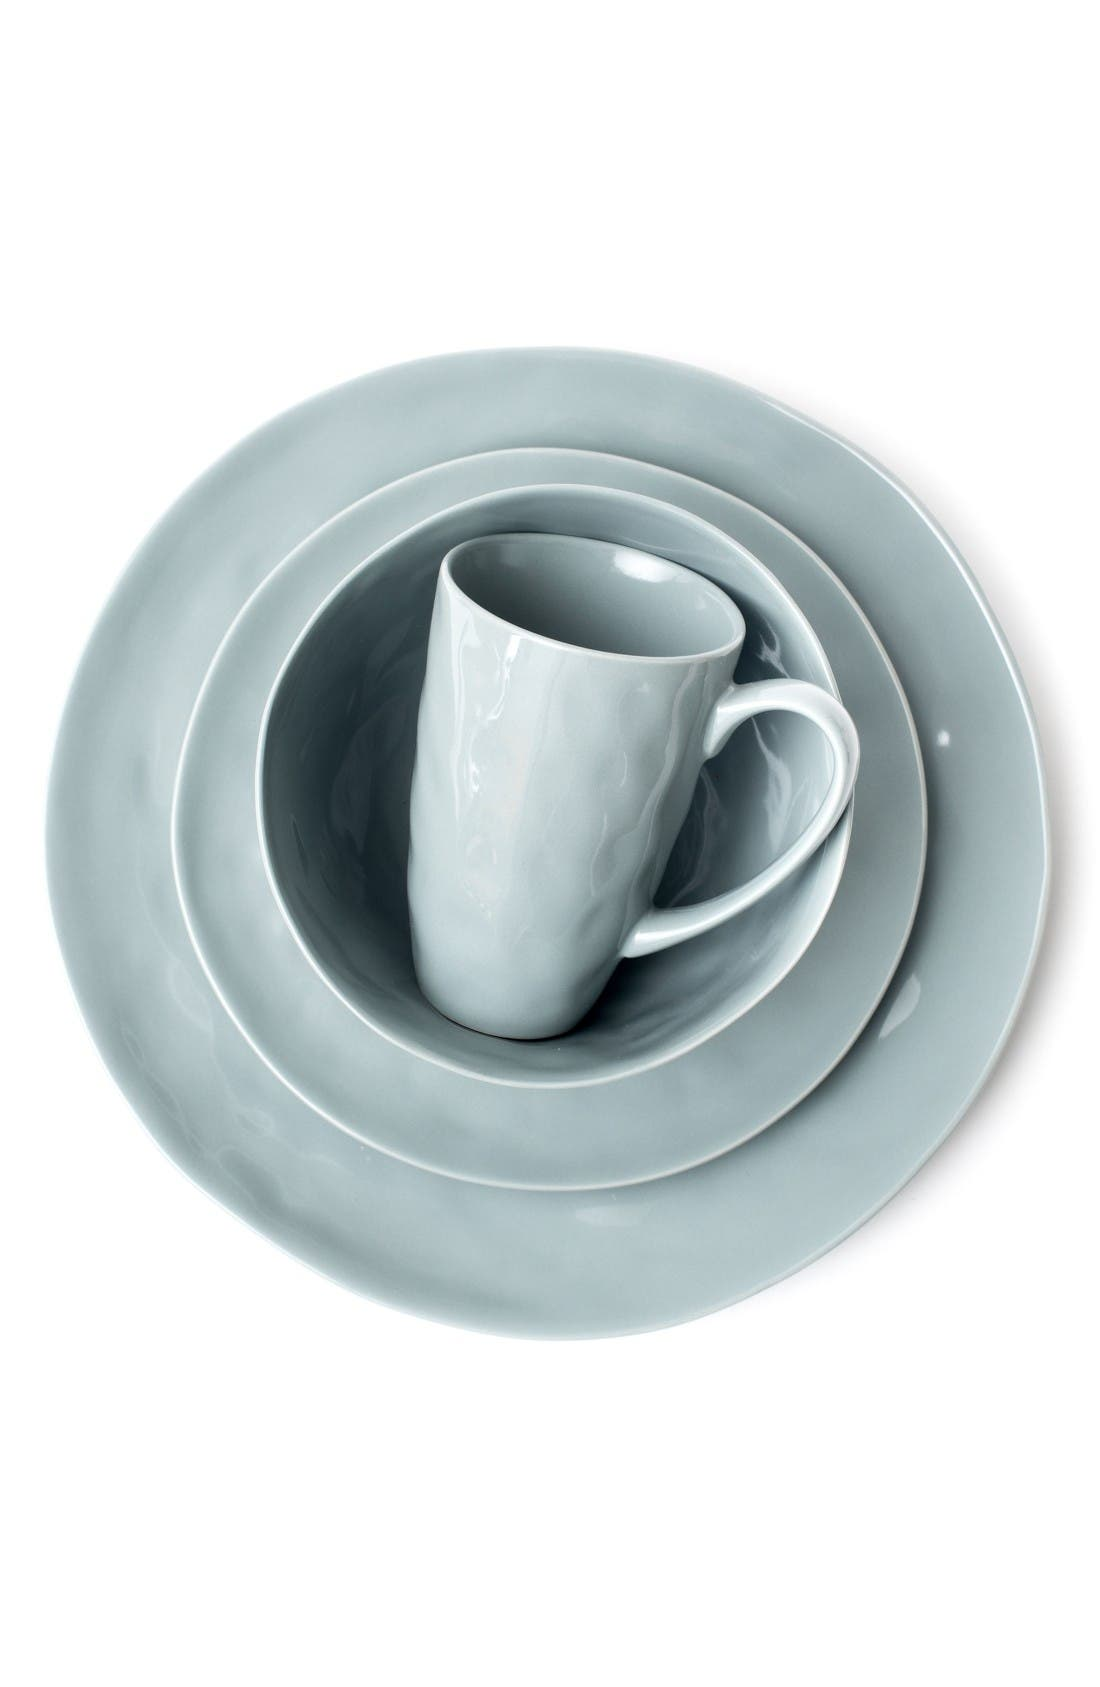 Zestt Sculptured Porcelain Dishware (Set of 16)